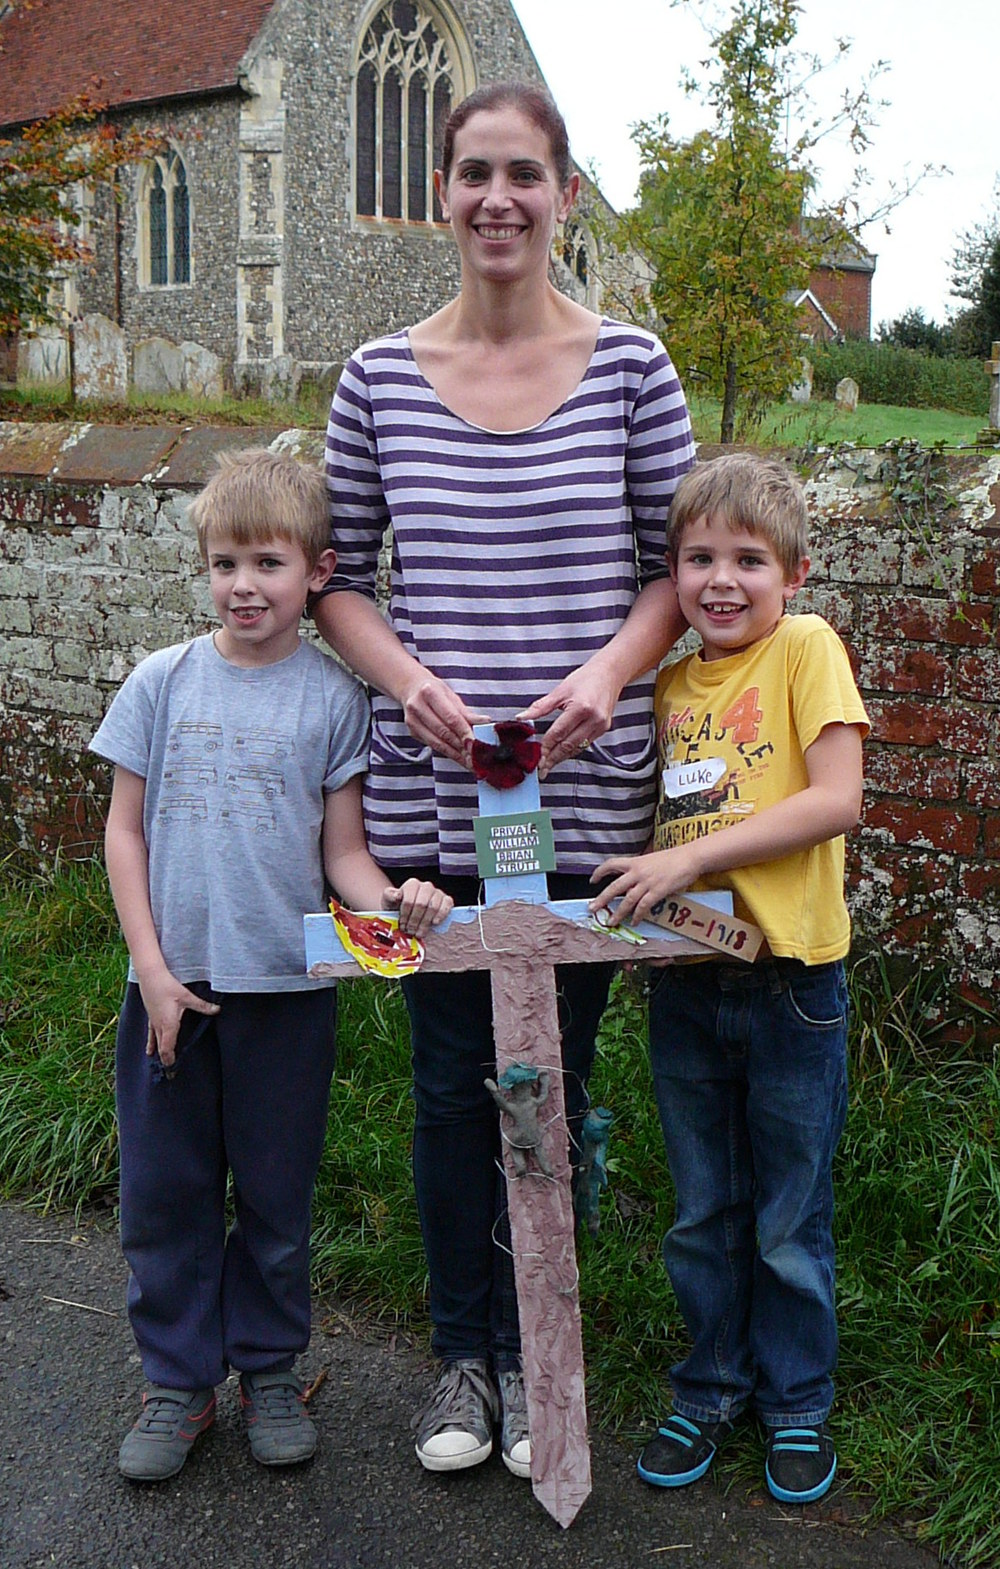 128 LUKE, PHILIPPA AND JAMIE PARKER WITH THE CROSS IN MEMORY OF WILLIAM STRUTT.jpg